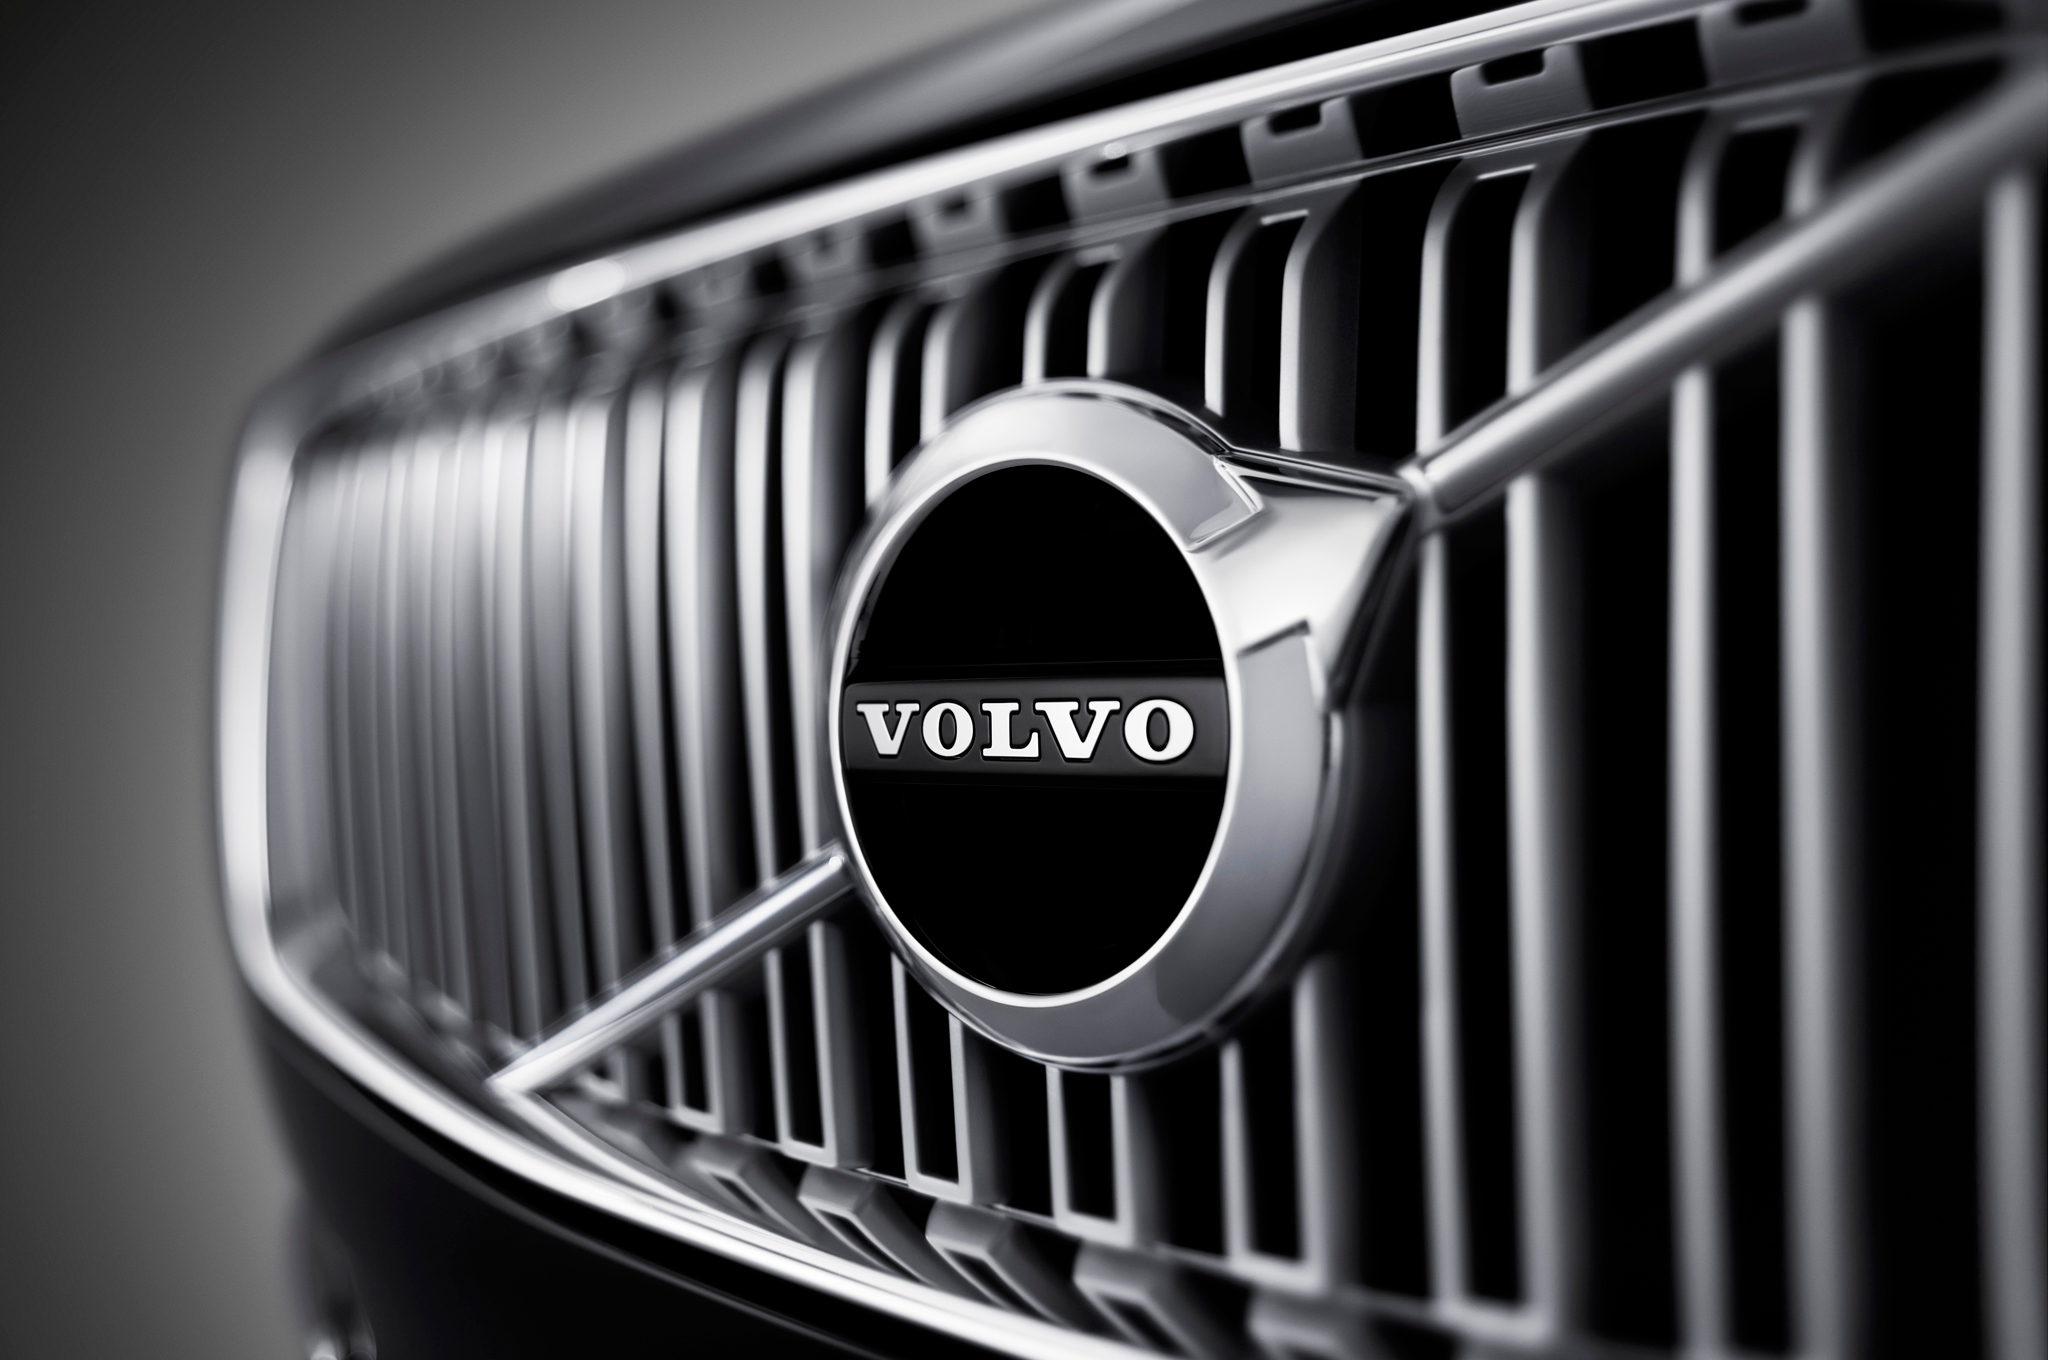 Future Cars: Volvo's Five-Year U.S. Plan Includes New S40, XC60